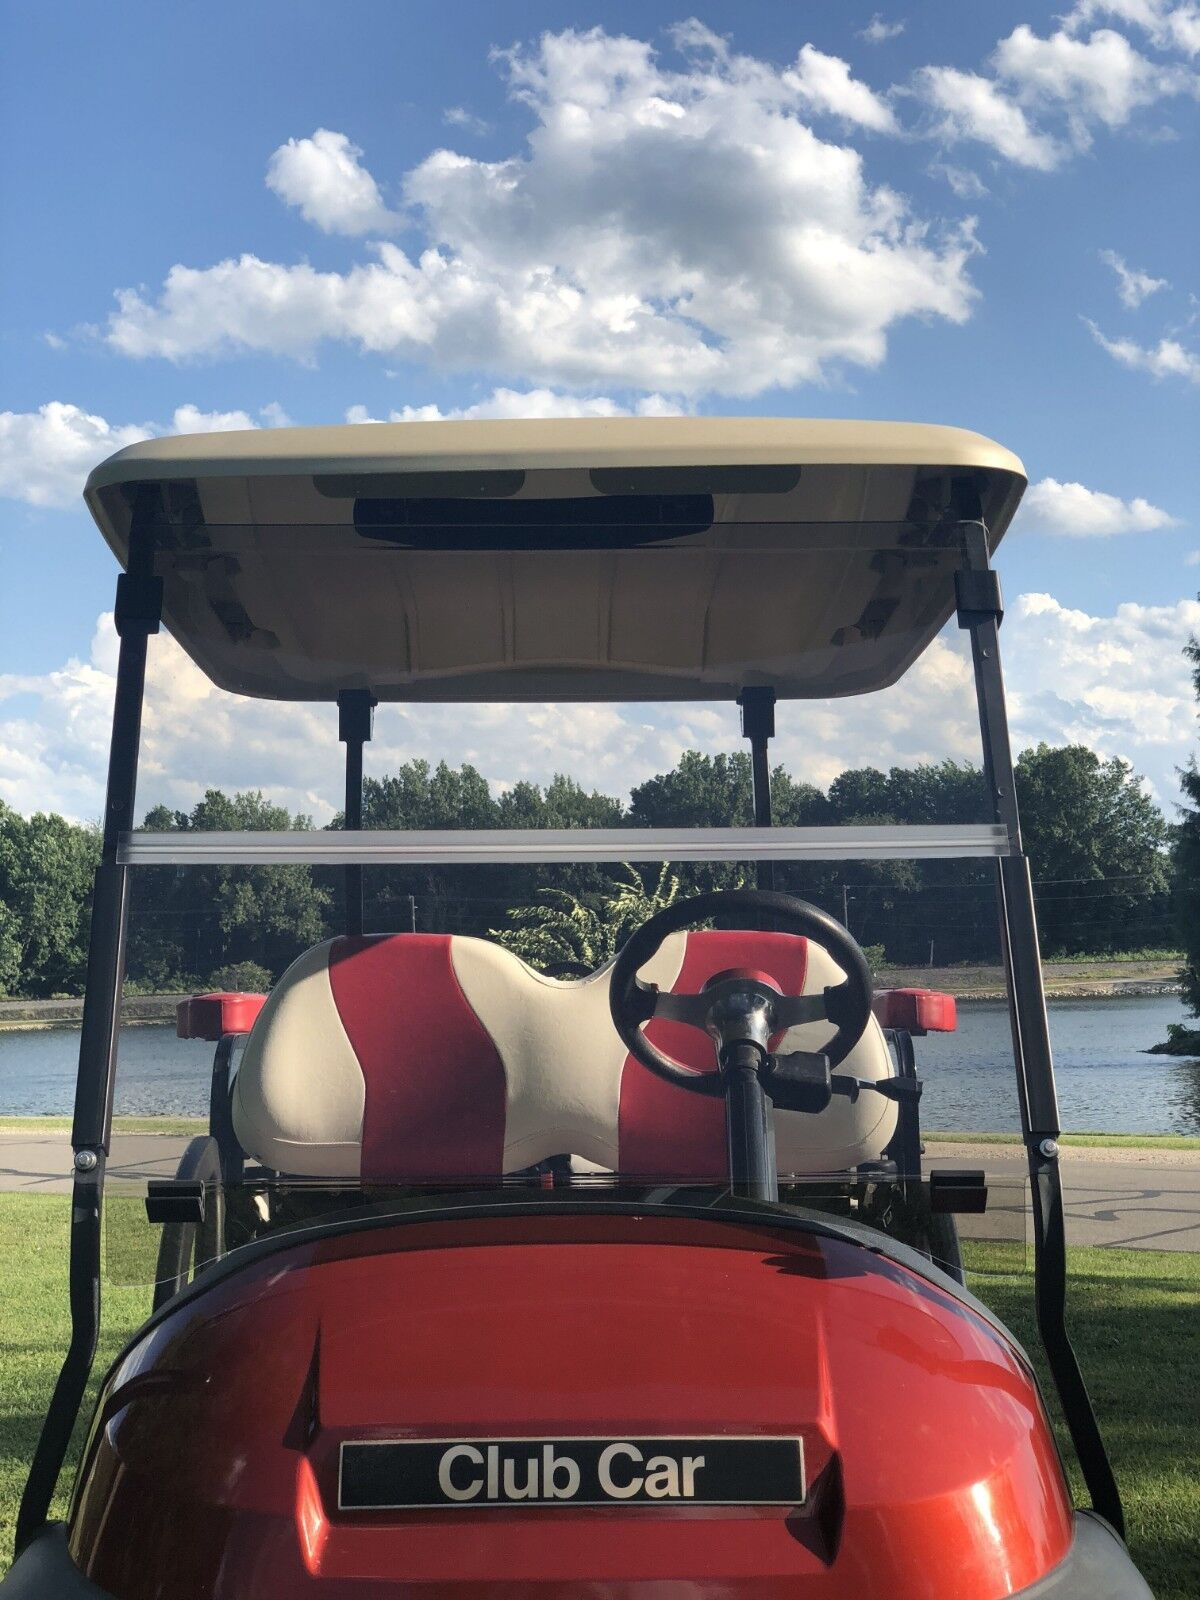 Club Car Tinted Windshield Fits Precedent Golf Cart Gas/ Electric 04+, Foldable